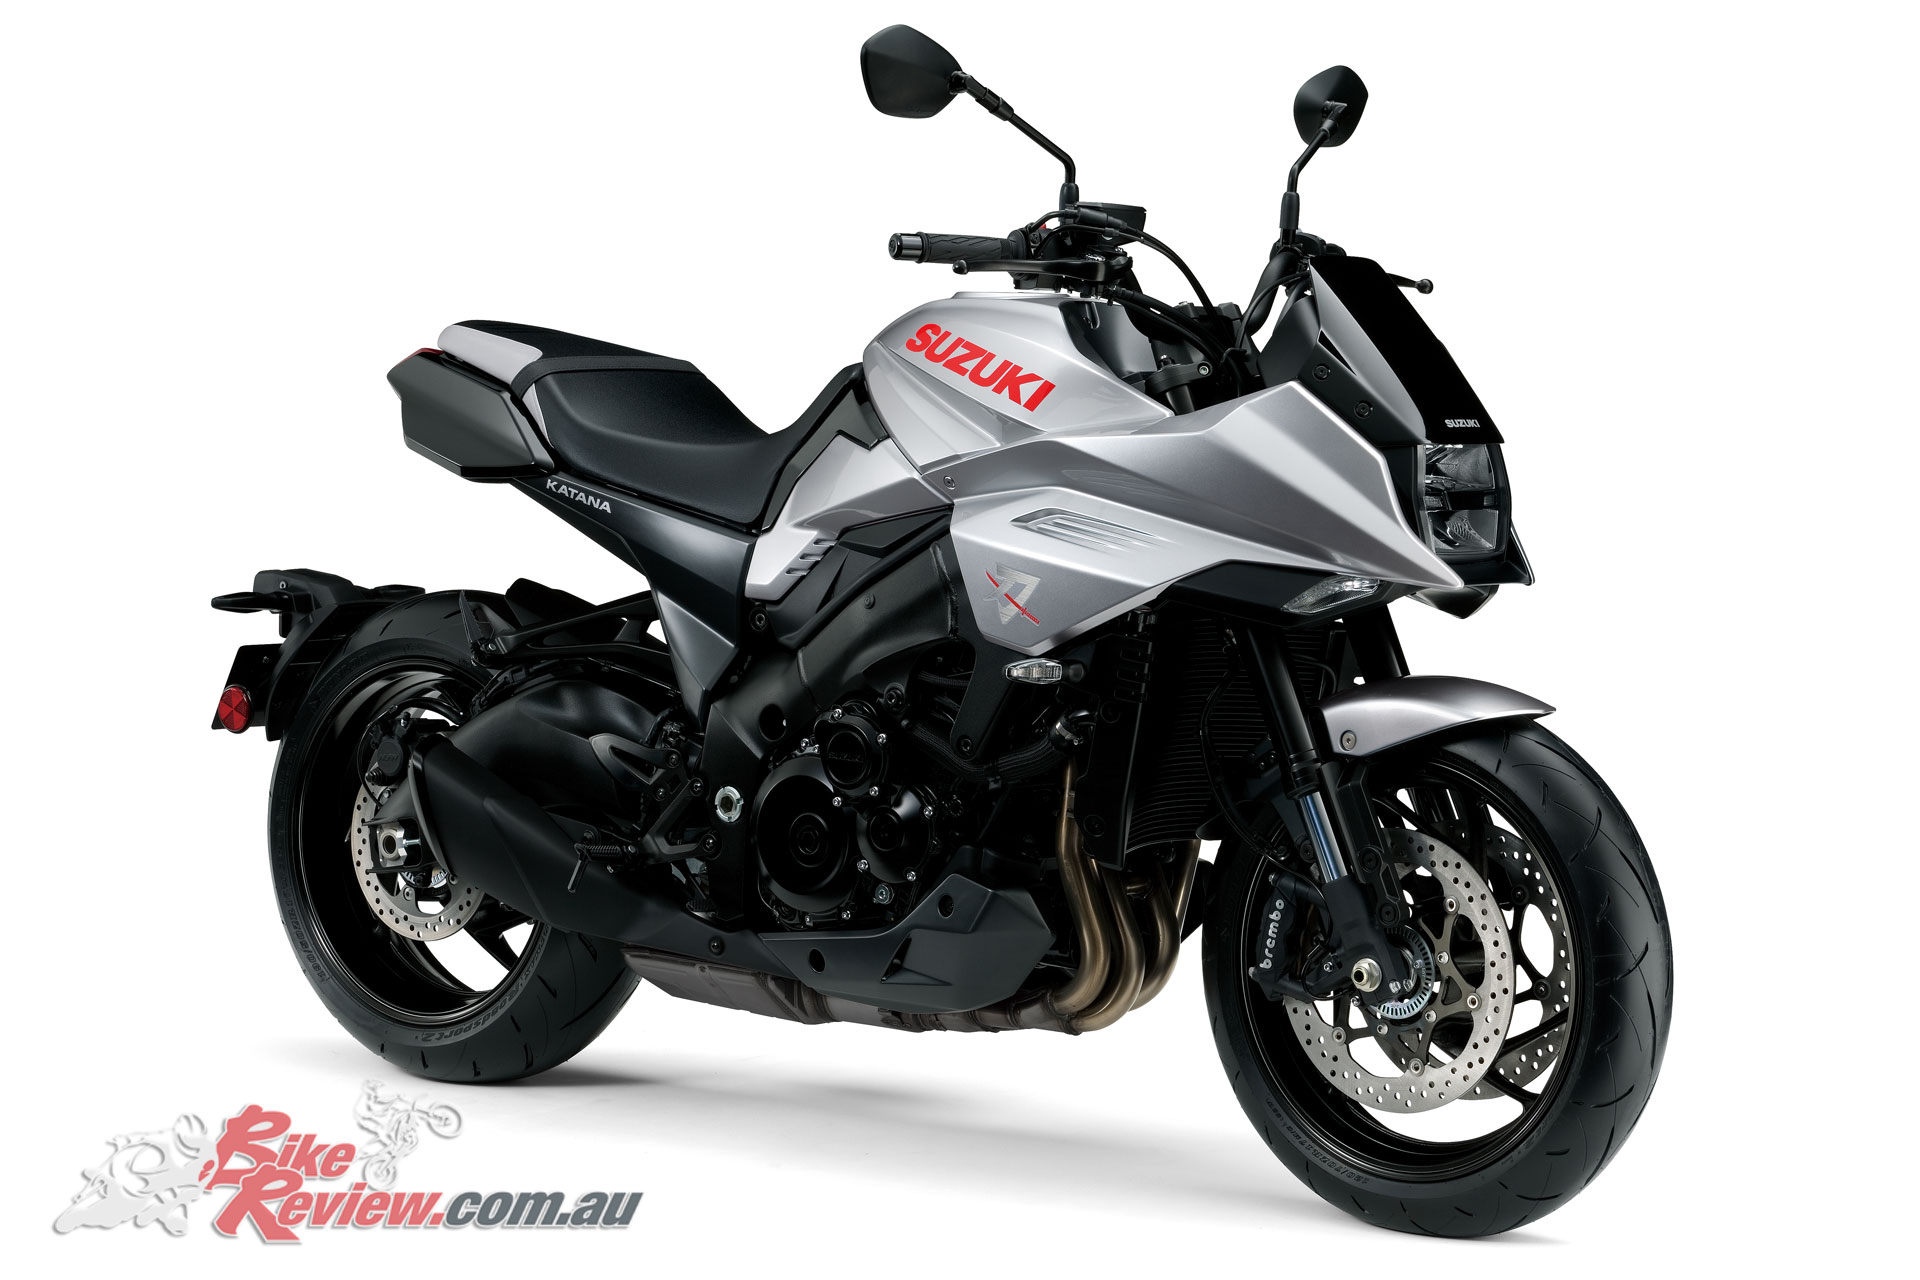 The 2020 Suzuki GSX-S1000S Katana has generally been poorly received by Katana fans...